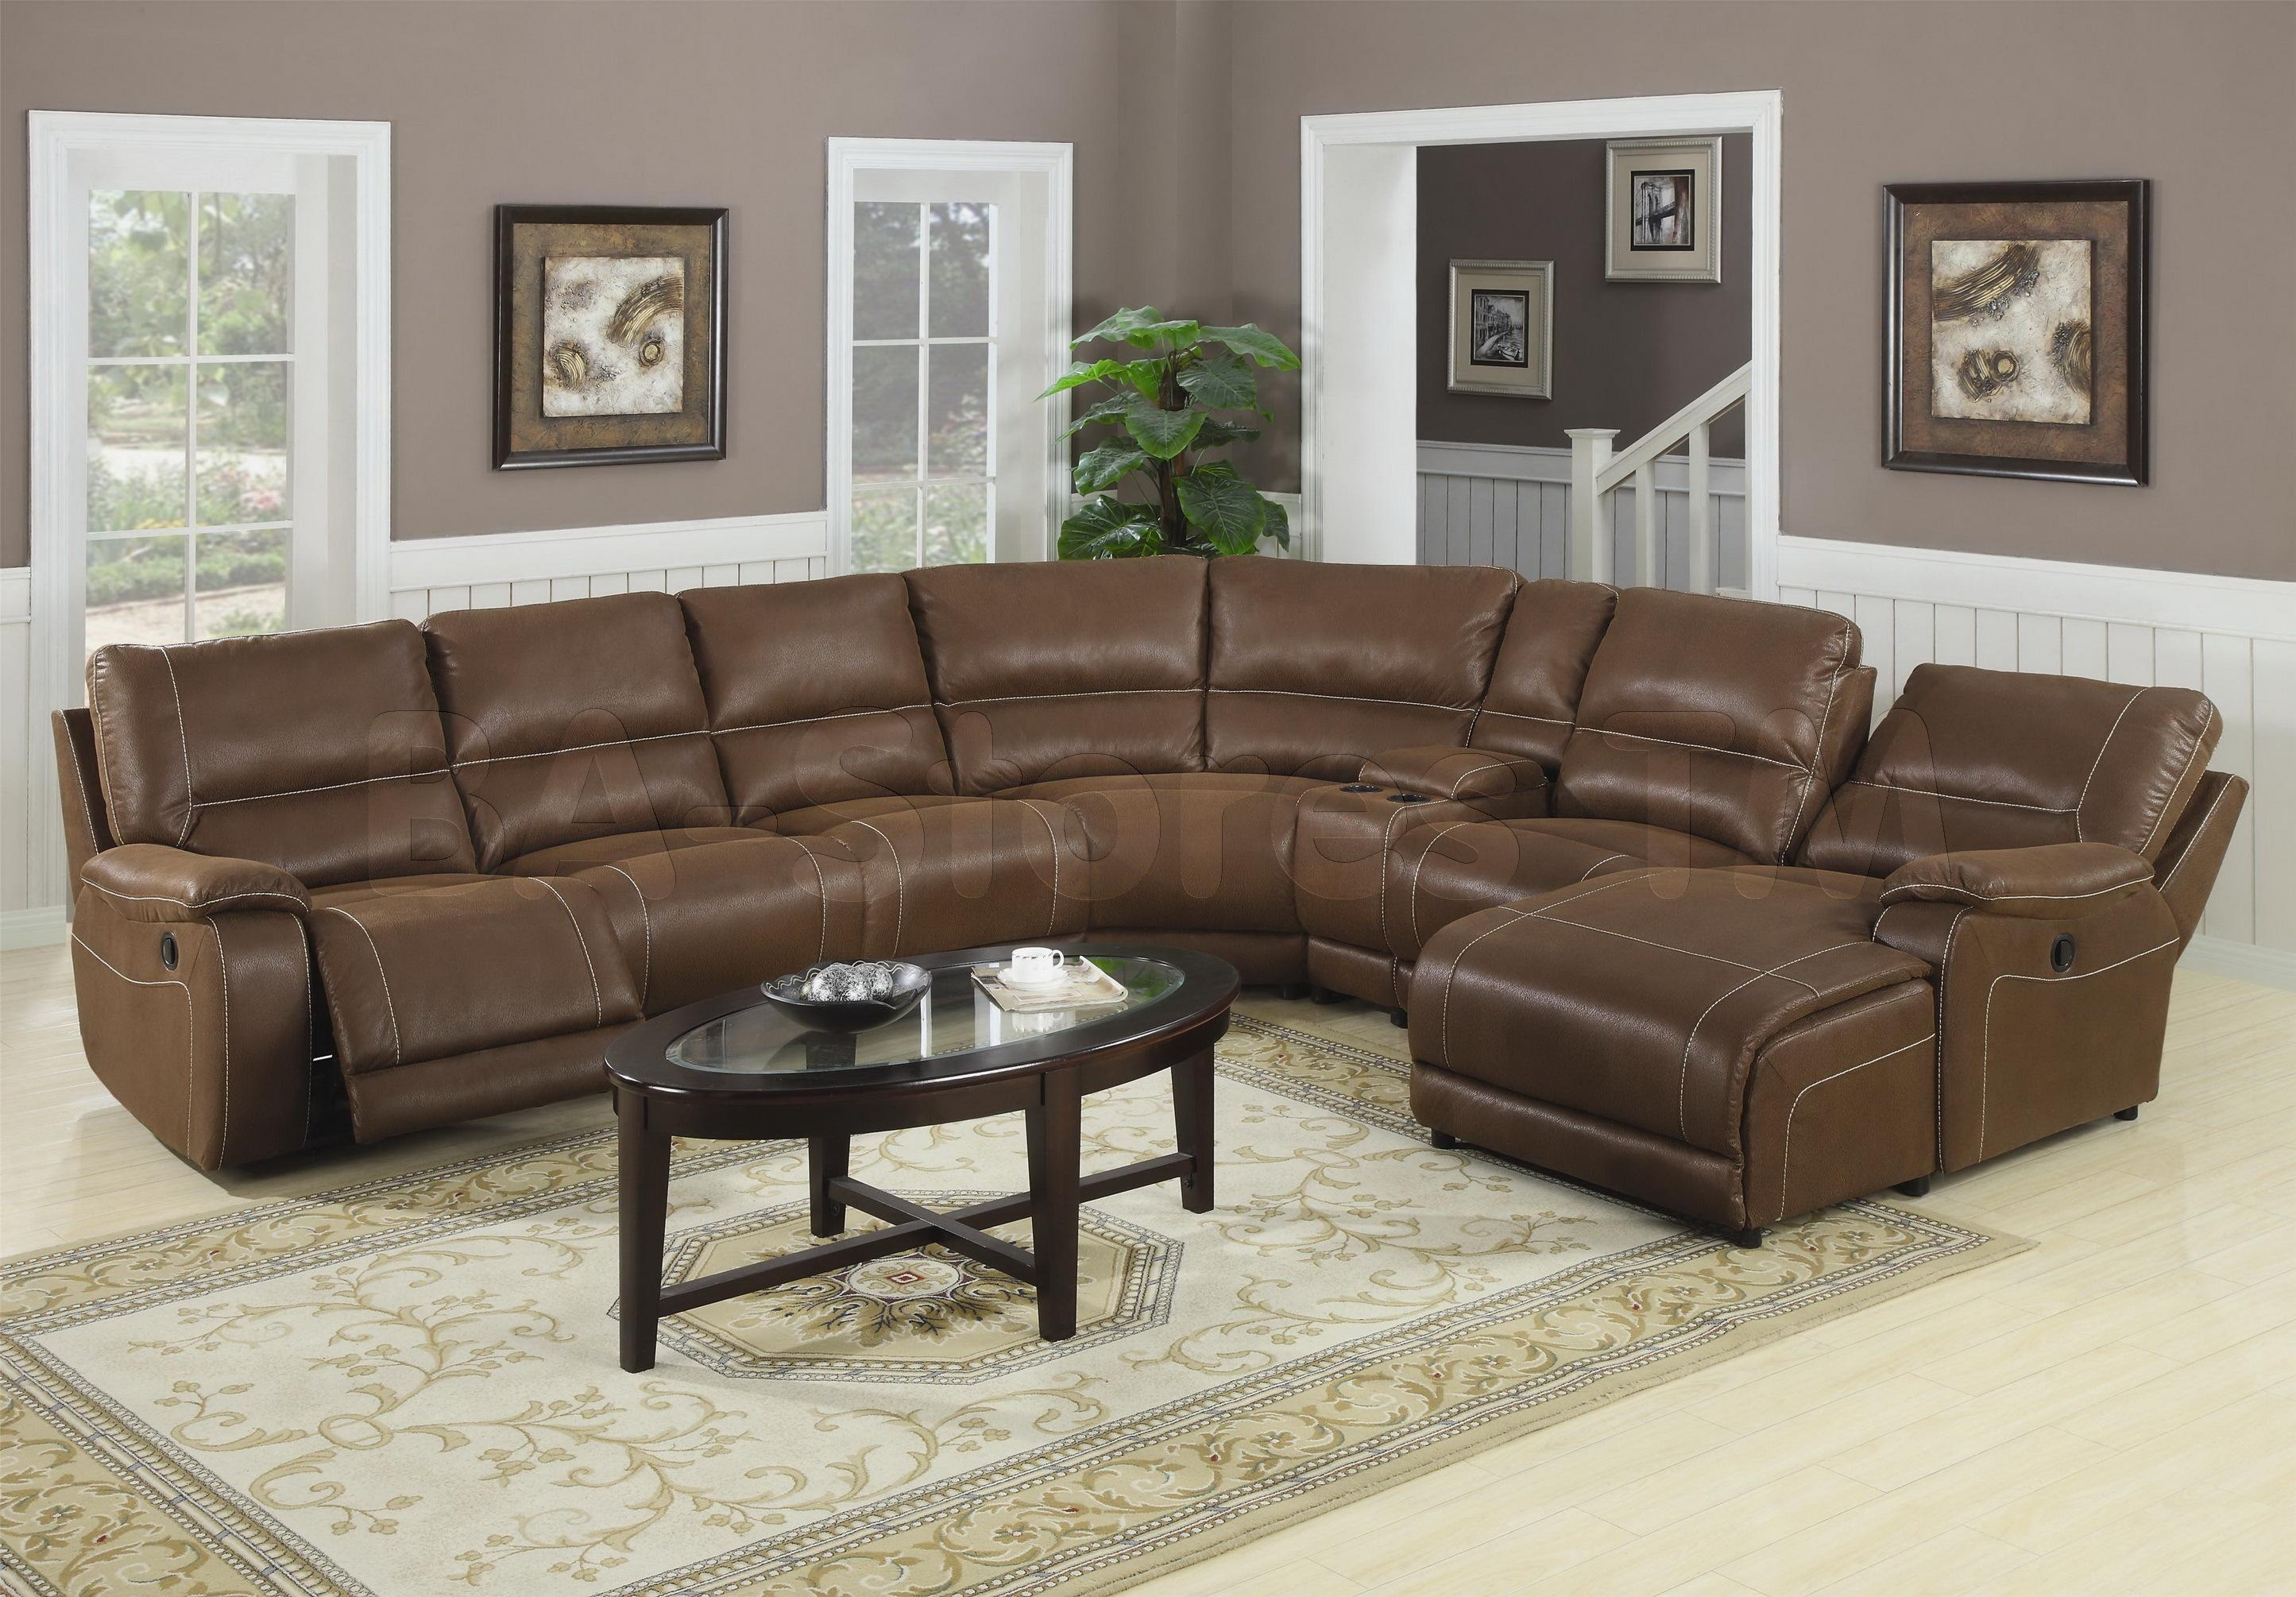 Long Sectional Sofa With Chaise | Tehranmix Decoration Throughout Long Chaise Sofa (View 10 of 20)